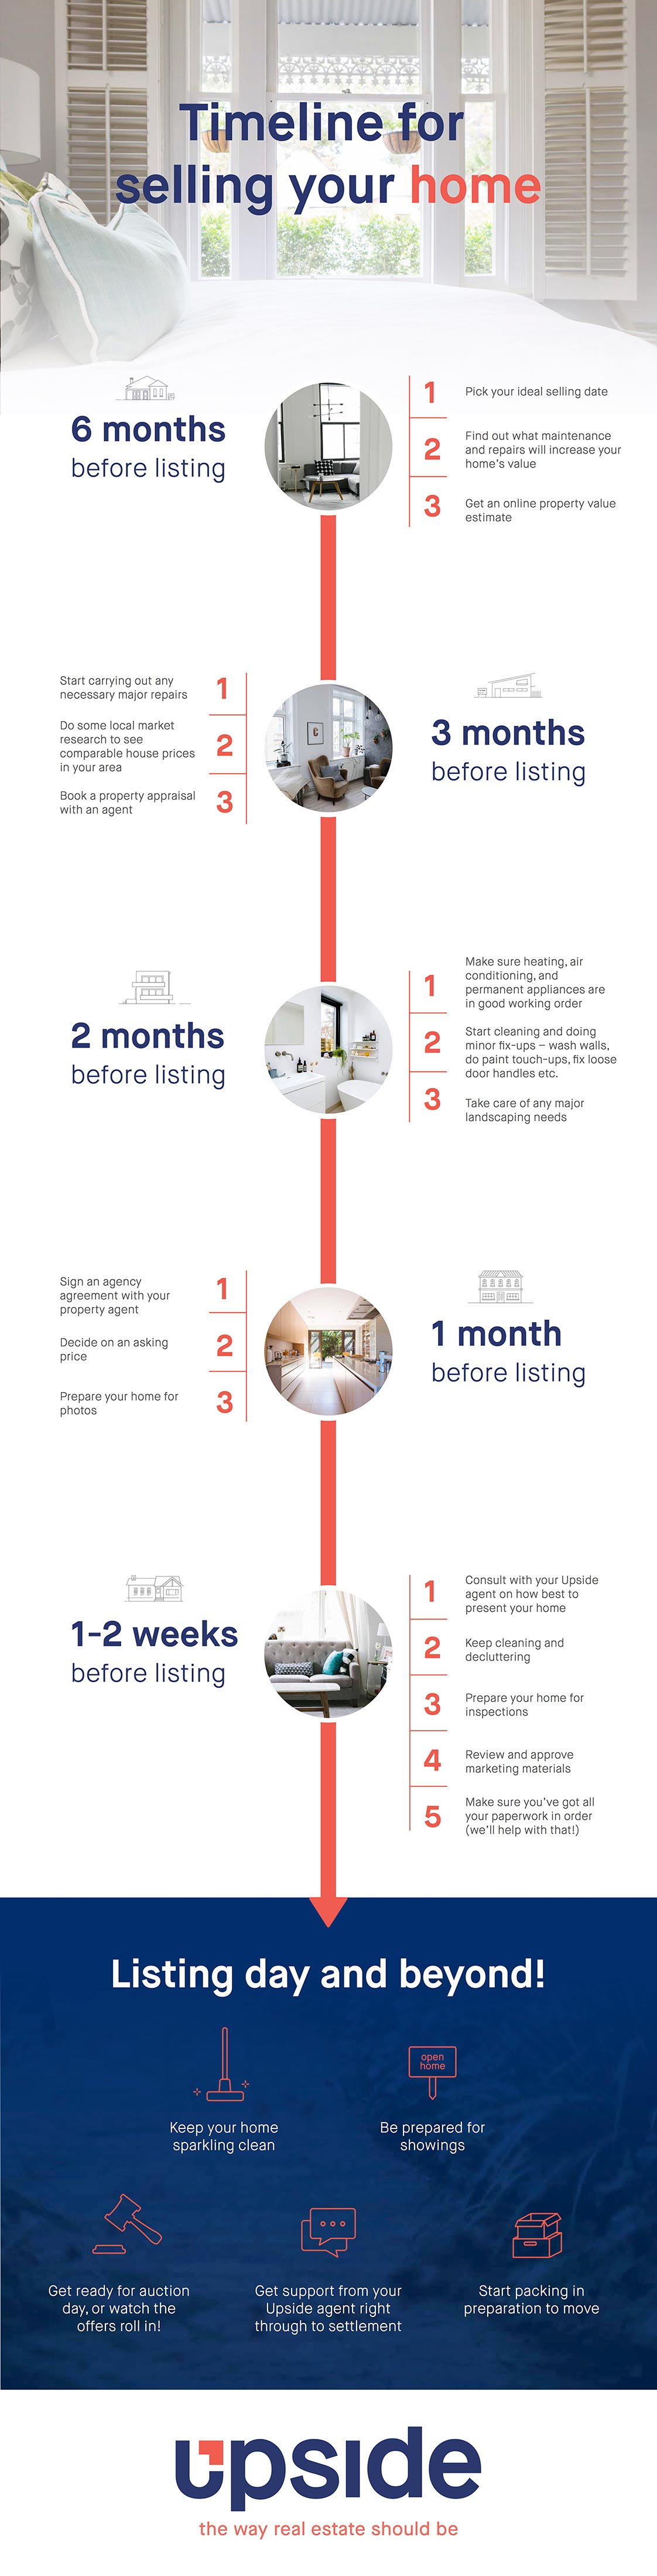 Timeline for Selling your Home